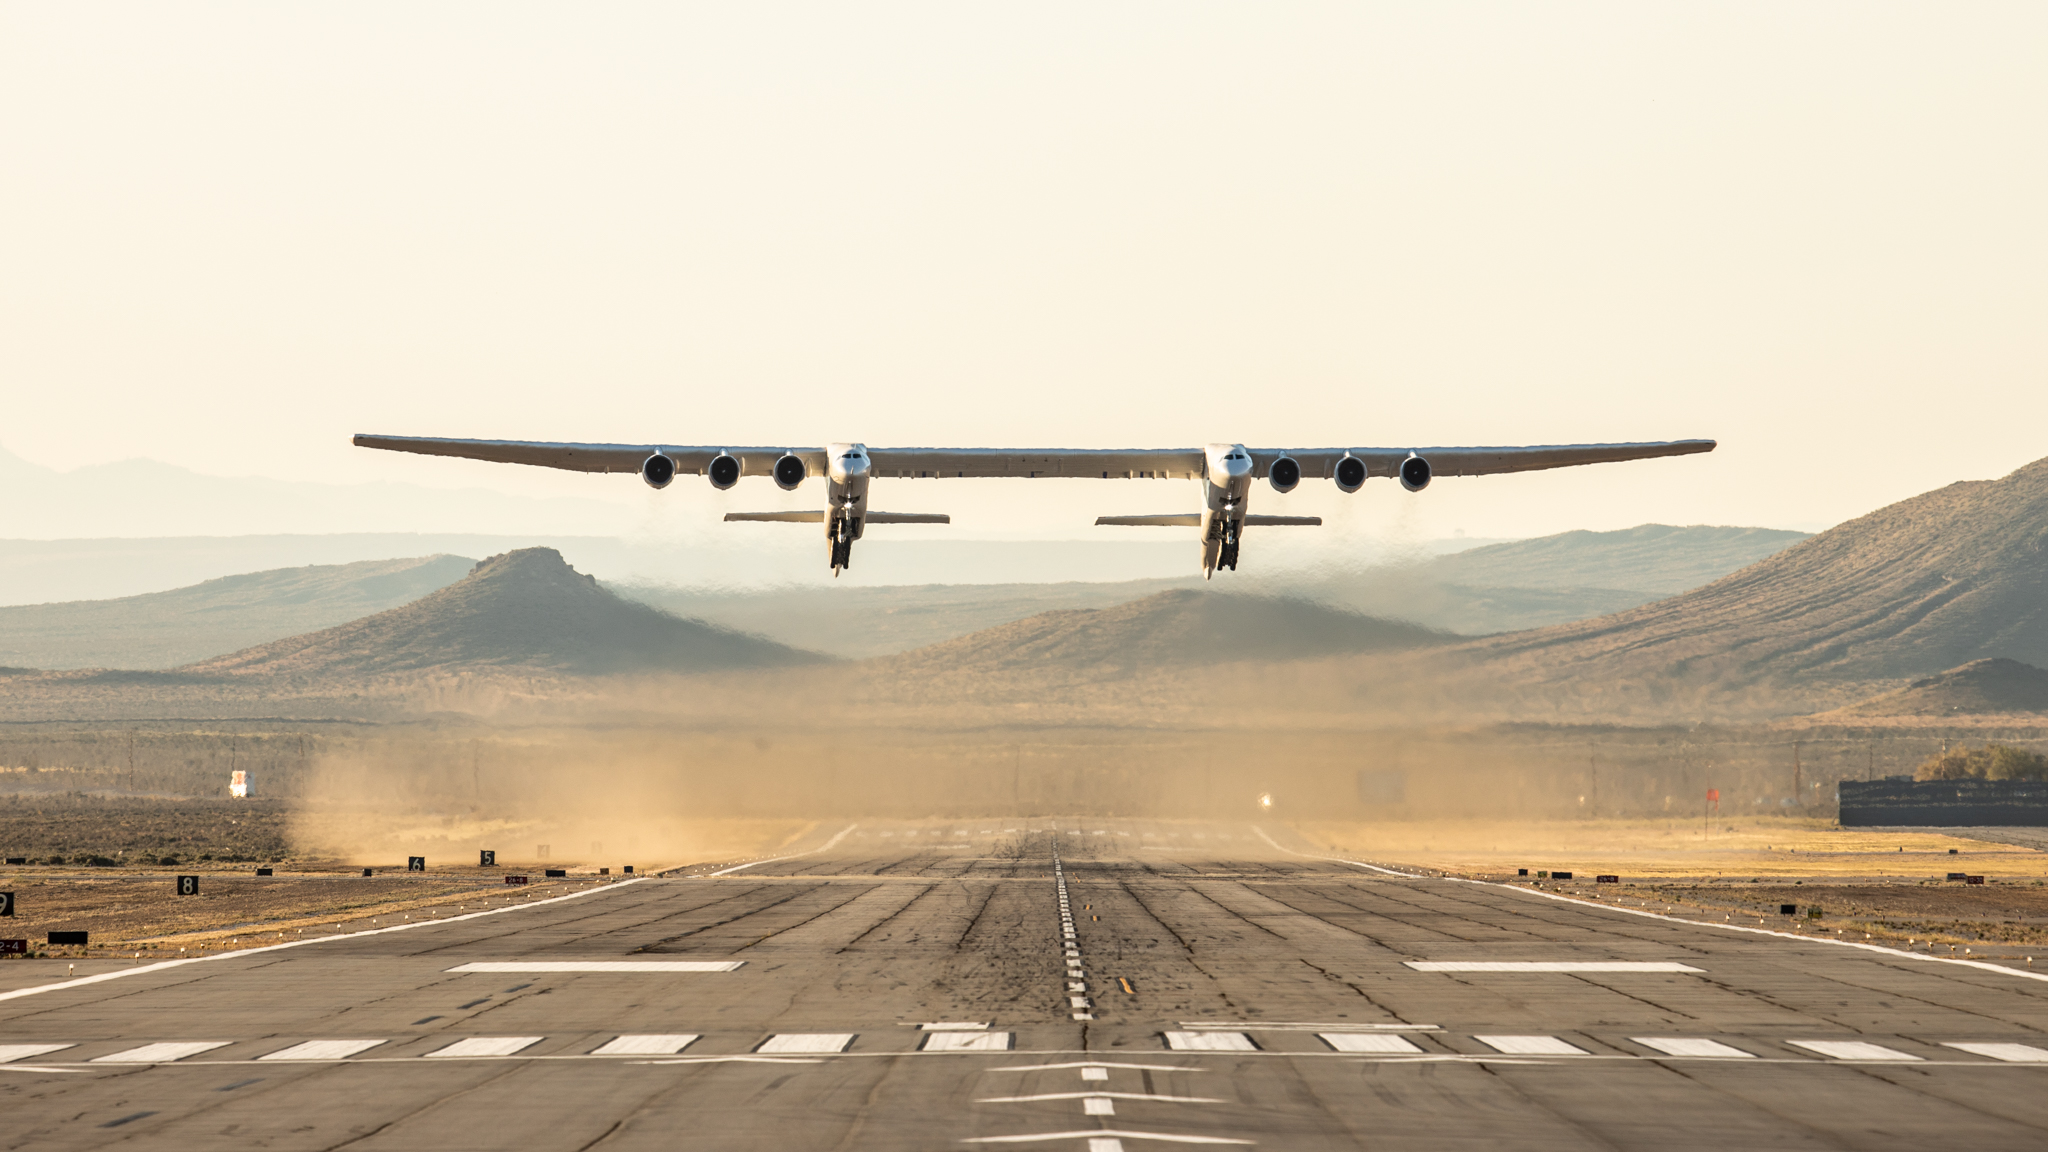 https://s3-us-west-2.amazonaws.com/stratowp-prod/wp-content/uploads/2019/04/13185324/Stratolaunch_FF-9564.jpg